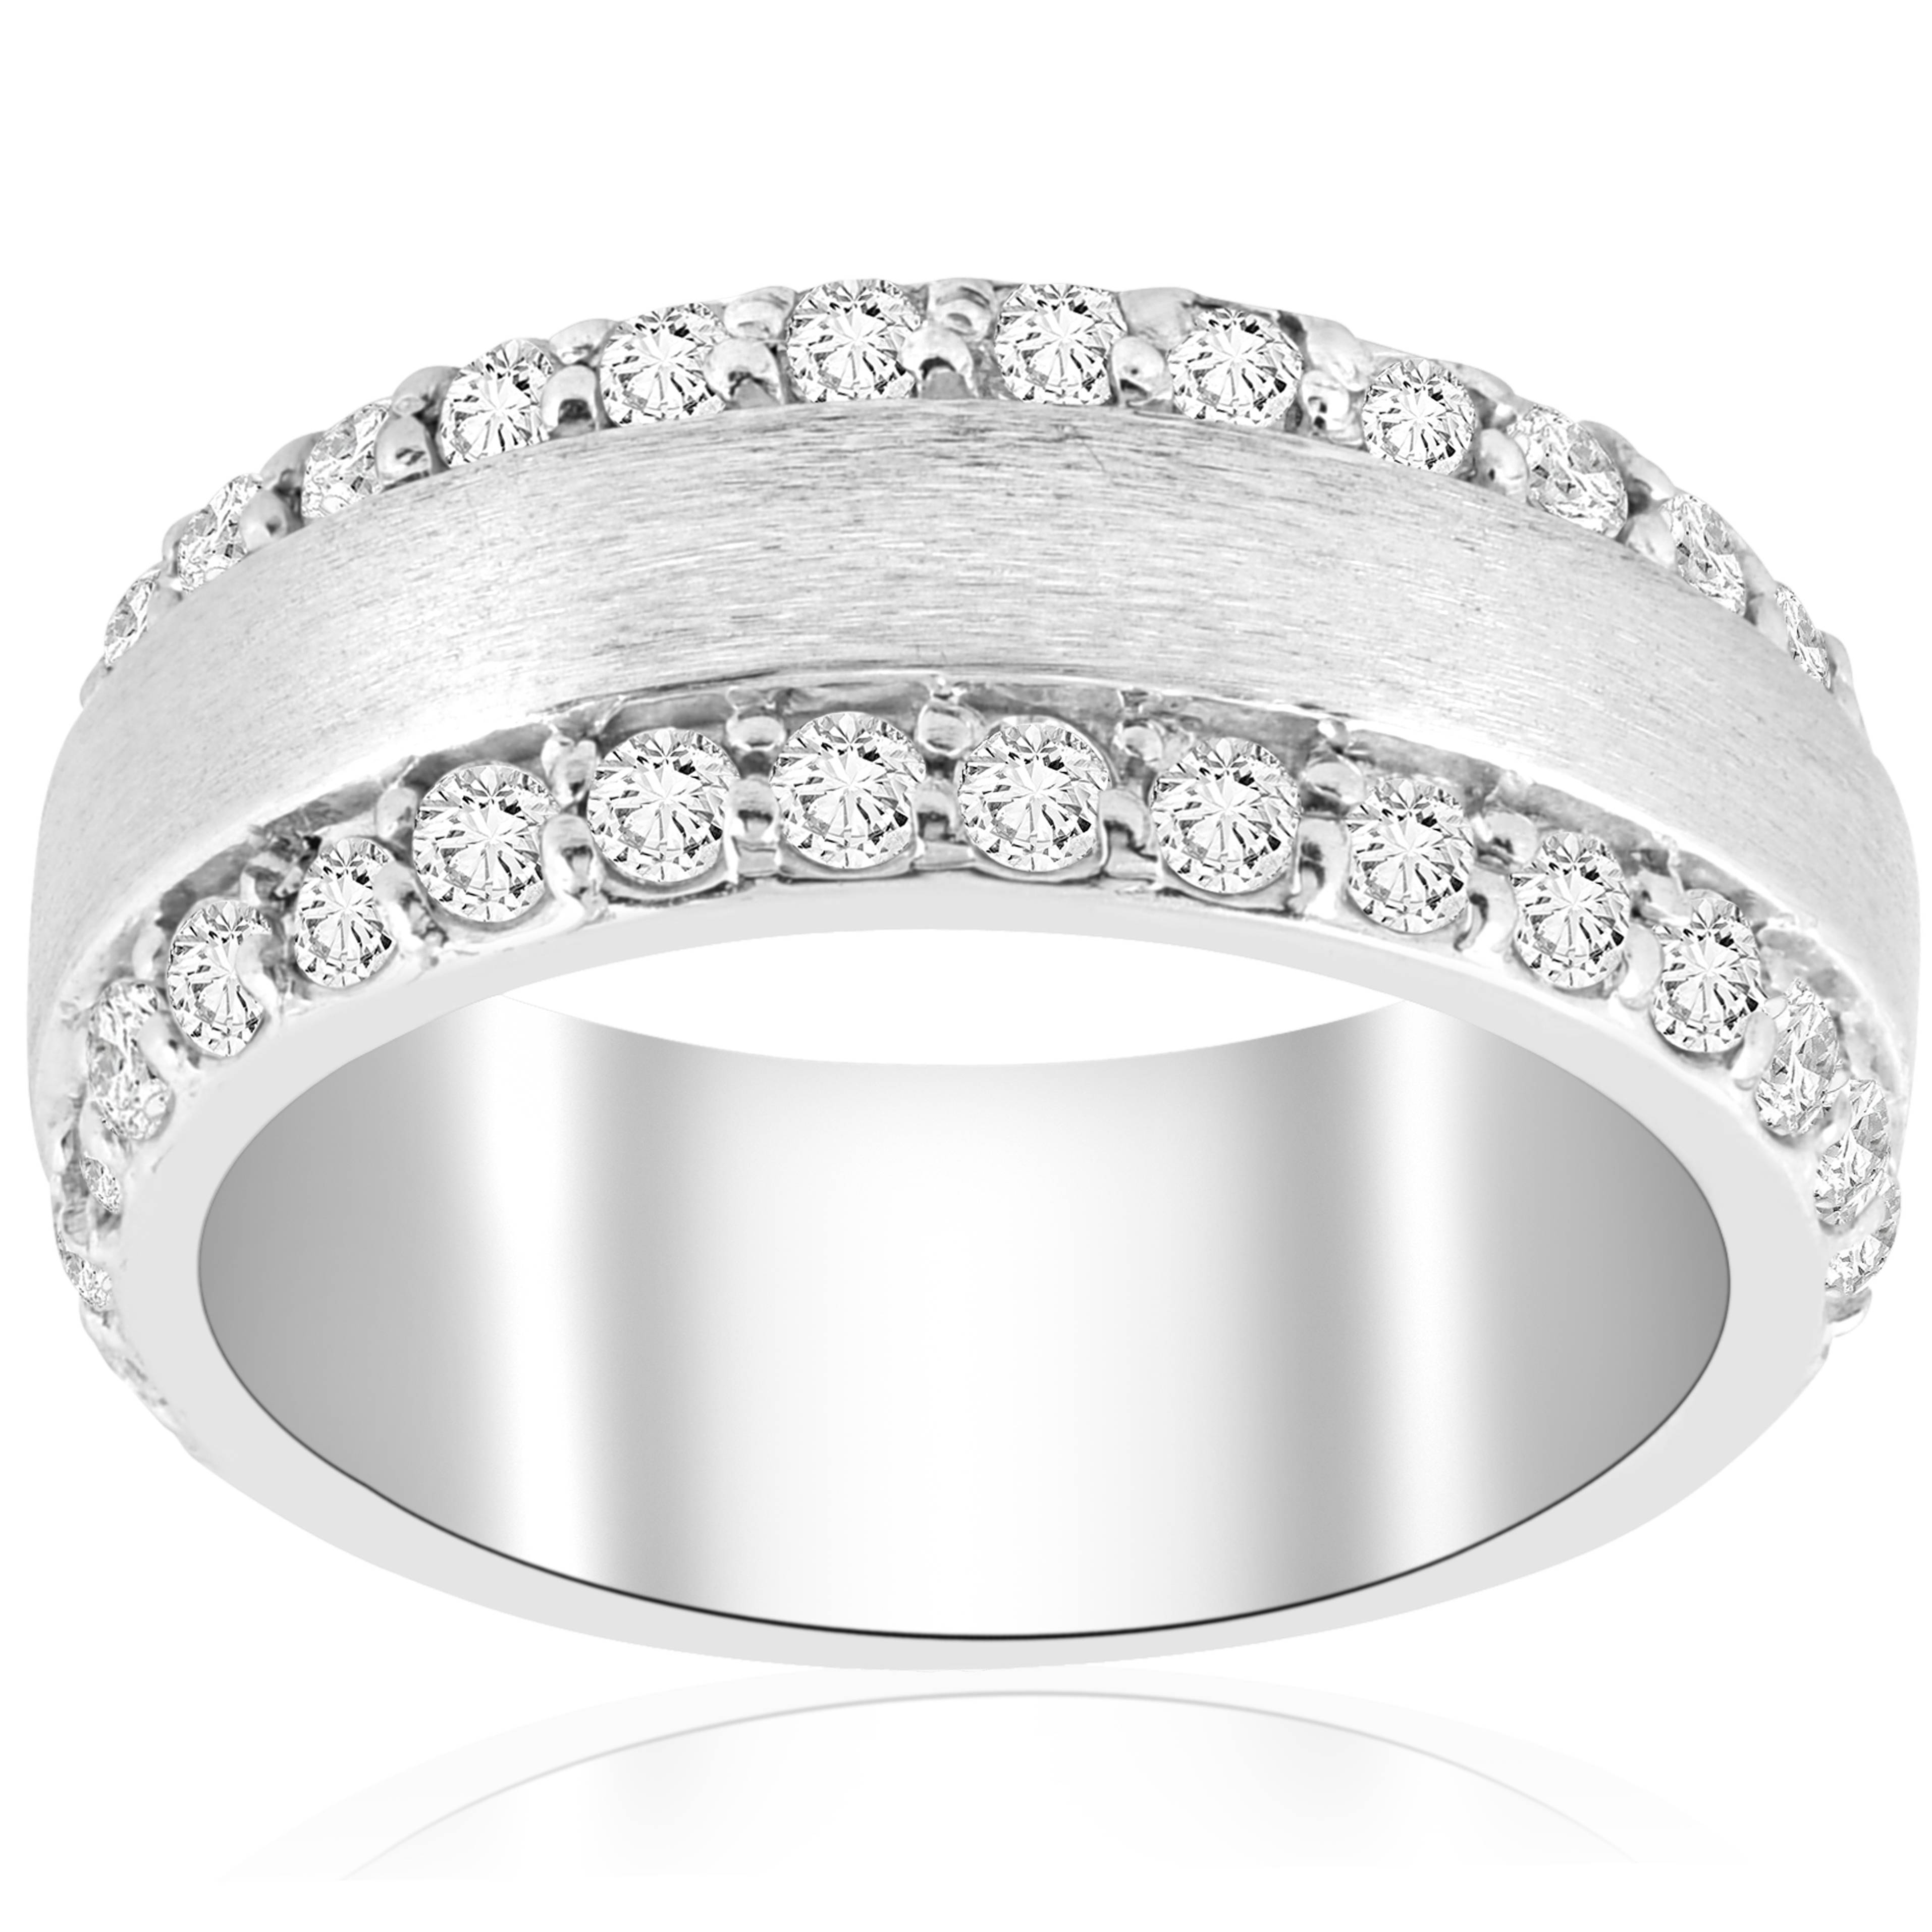 2 3/4 Ct Double Row Brushed Wide Heavy Wedding Anniversary Ring 14K White  Gold With Regard To Latest Diamond Three Row Anniversary Rings In White Gold (Gallery 19 of 25)